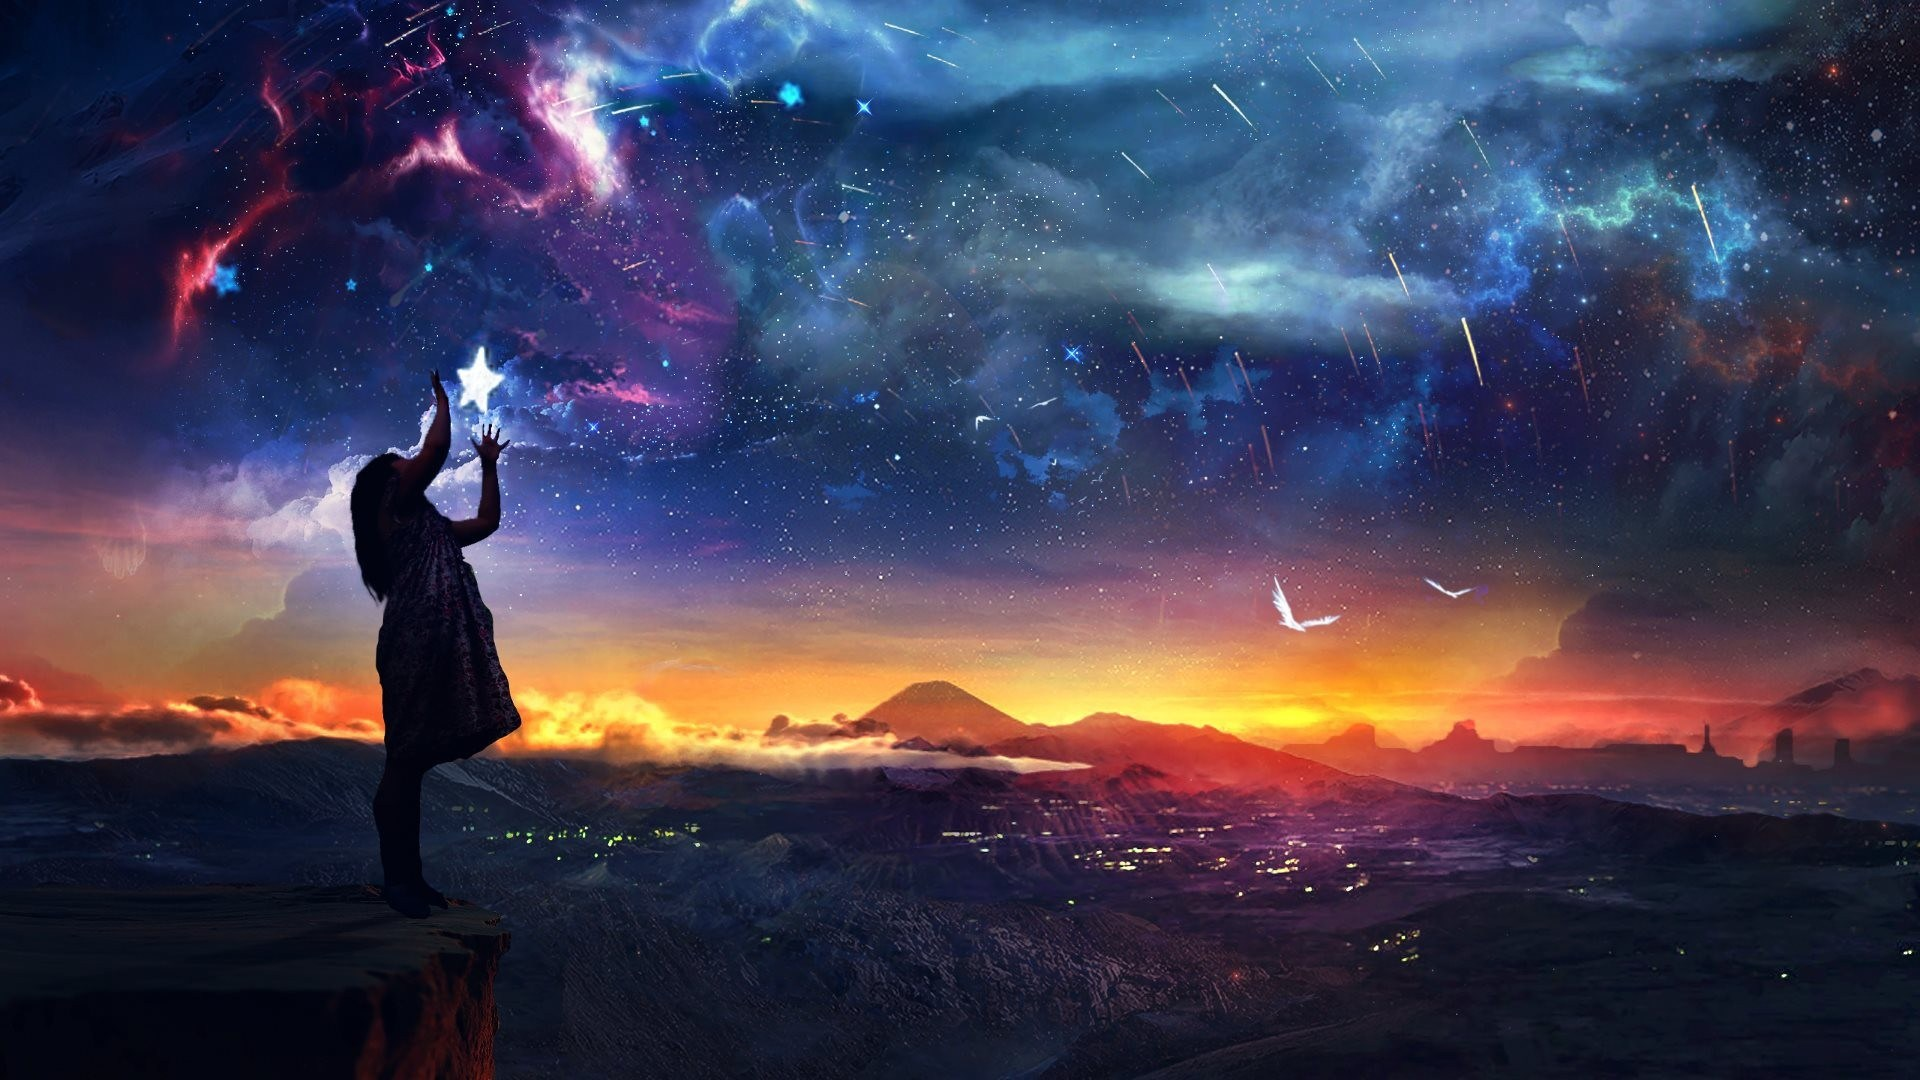 Fantasy_Woman_straightens_stars_in_the_sky_098460_-1.jpg